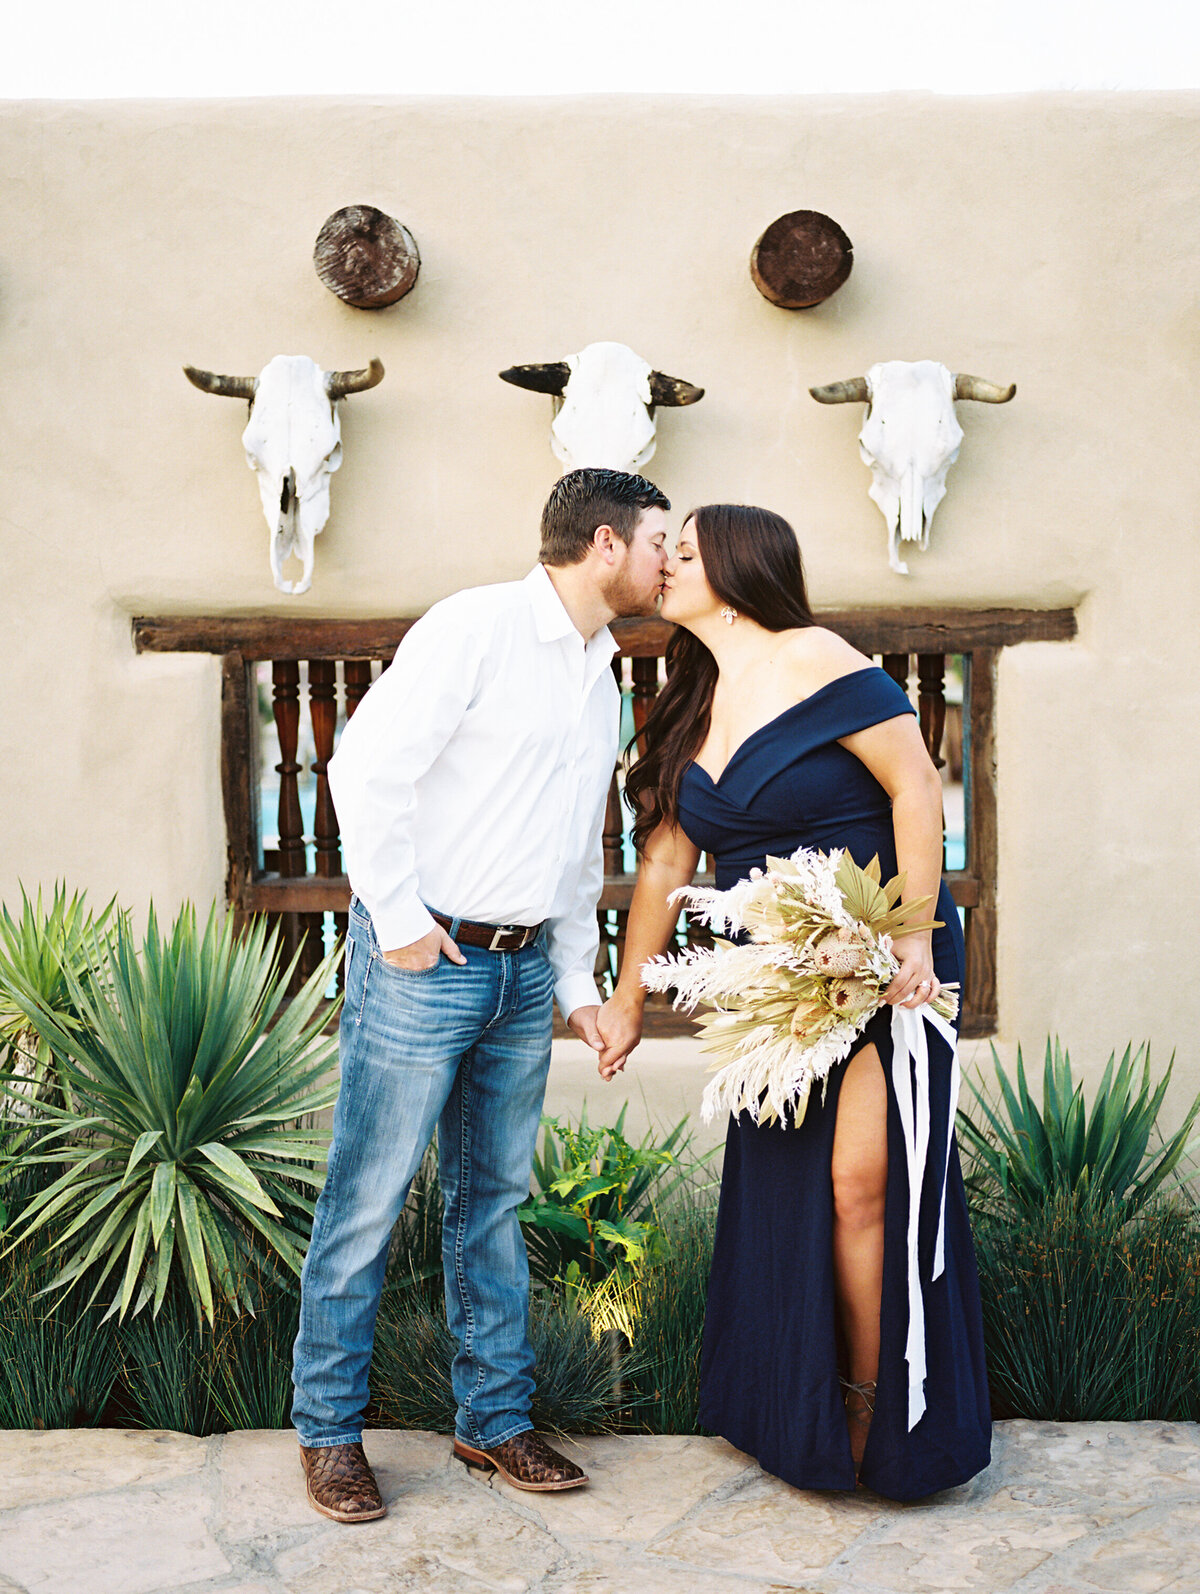 Big-Bend-Engagements-Gartin-Melanie-Julian-Photography-19